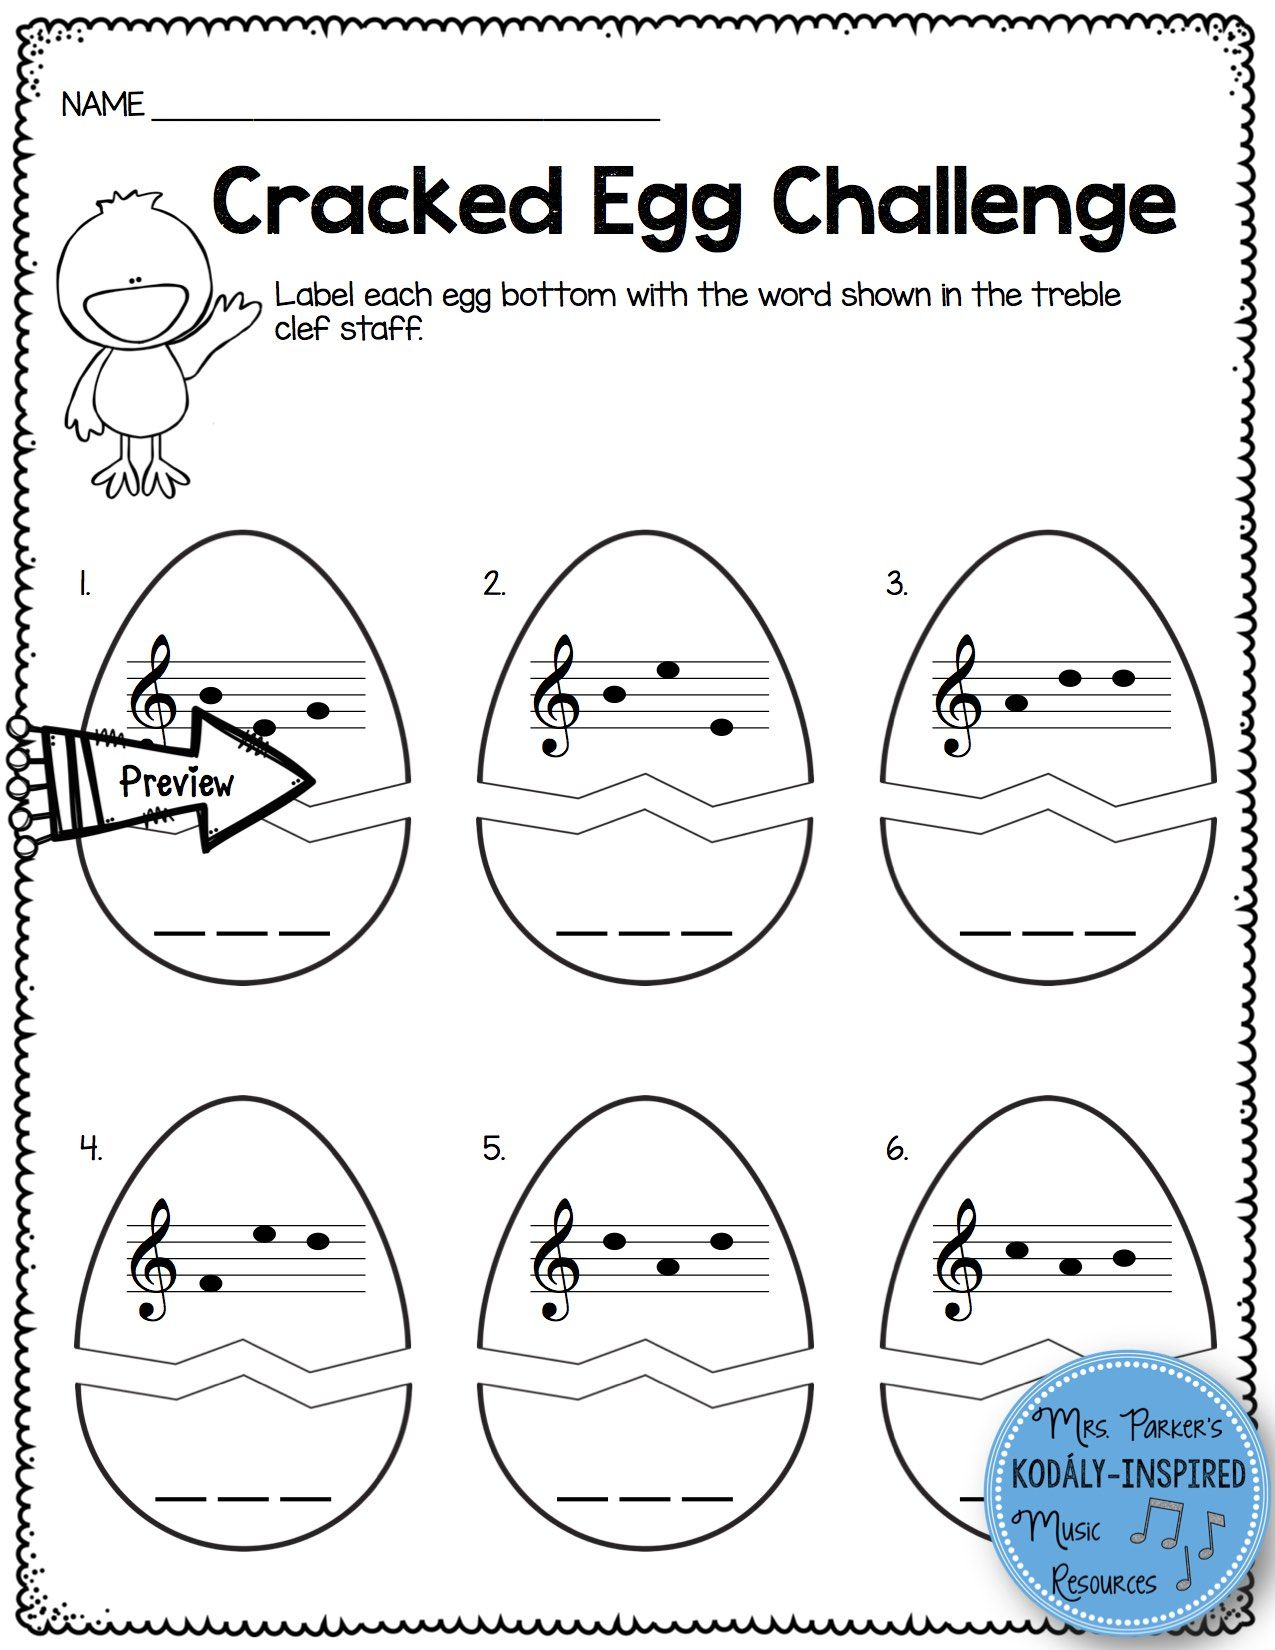 Cracked Egg Challenge Identifying Three Letter Words In The Treble Clef Staff